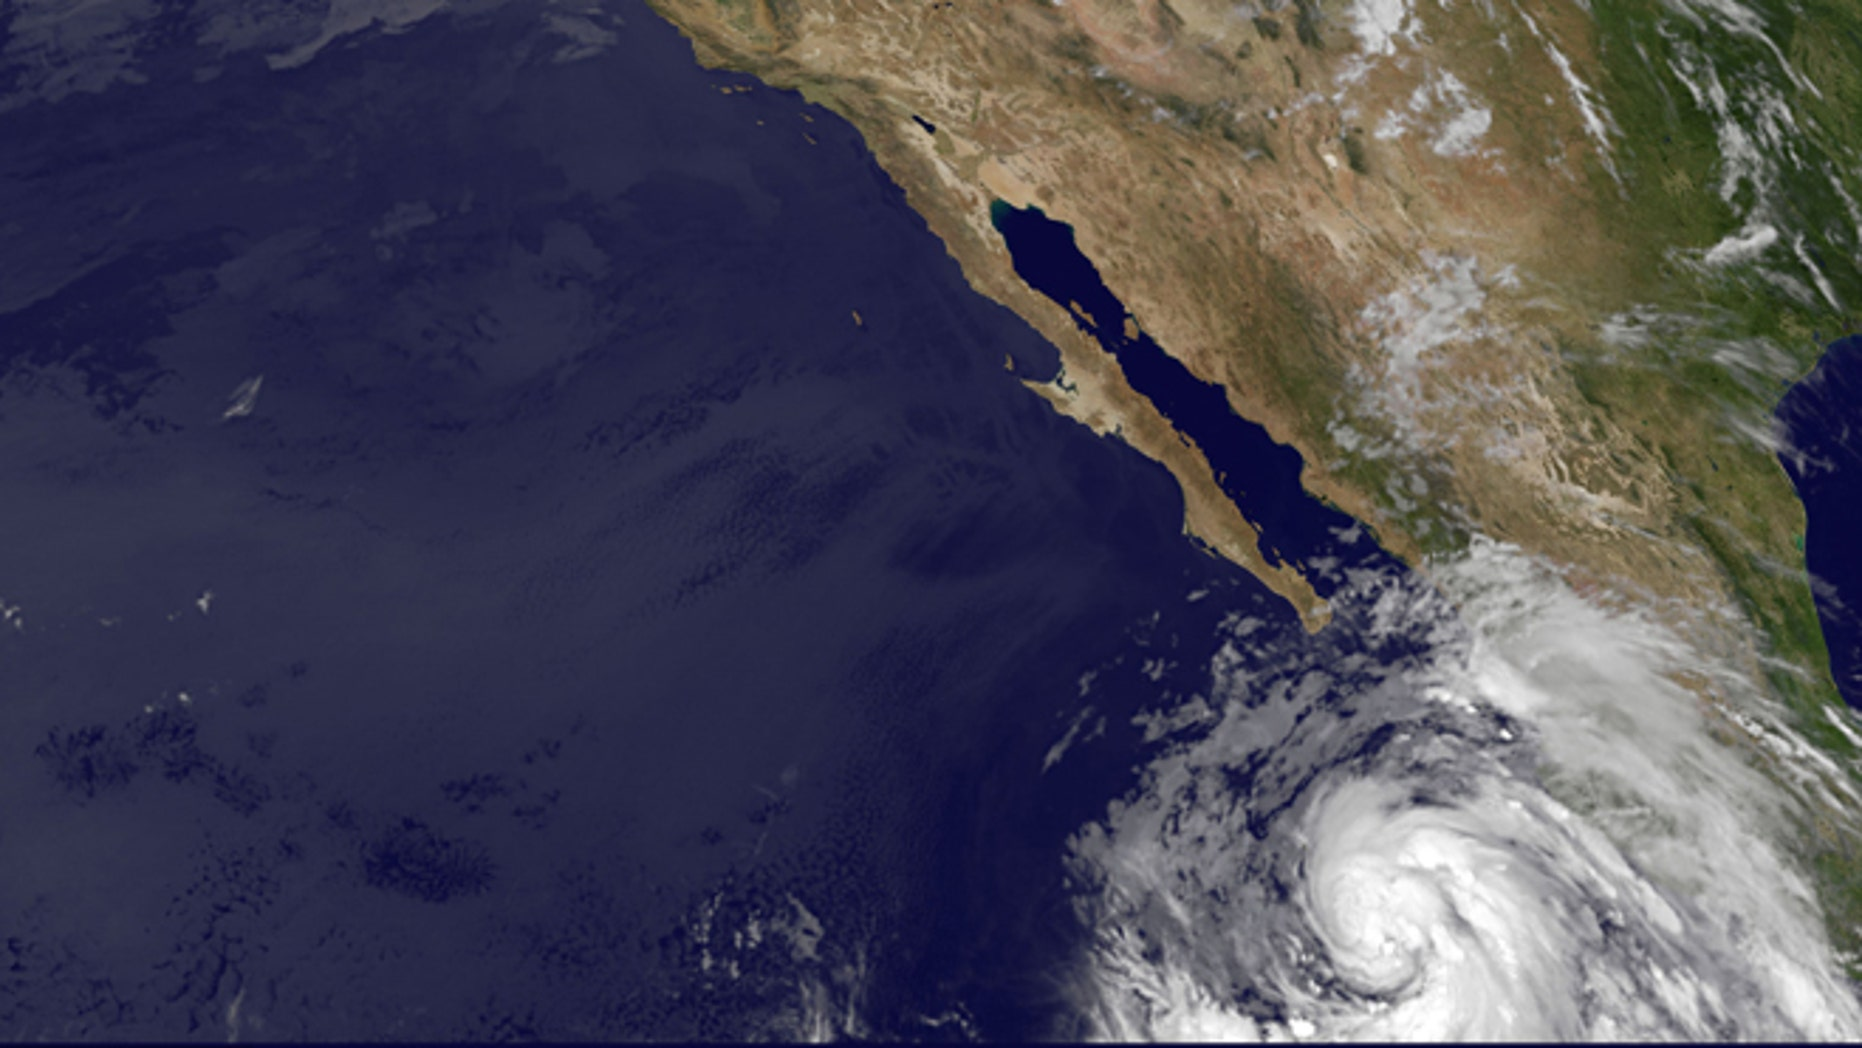 This image provided by NOAA shows tropical storm Cosme taken at 5:00 a.m. EDT Tuesday June 25, 2013. The storm's maximum sustained winds early Tuesday are near 65 mph (100 kph) with additional strengthening expected. Cosme is likely to become a hurricane later in the day as it swirls in the Pacific off Mexico's coast. It is not expected to make landfall.(AP Photo/NOAA)